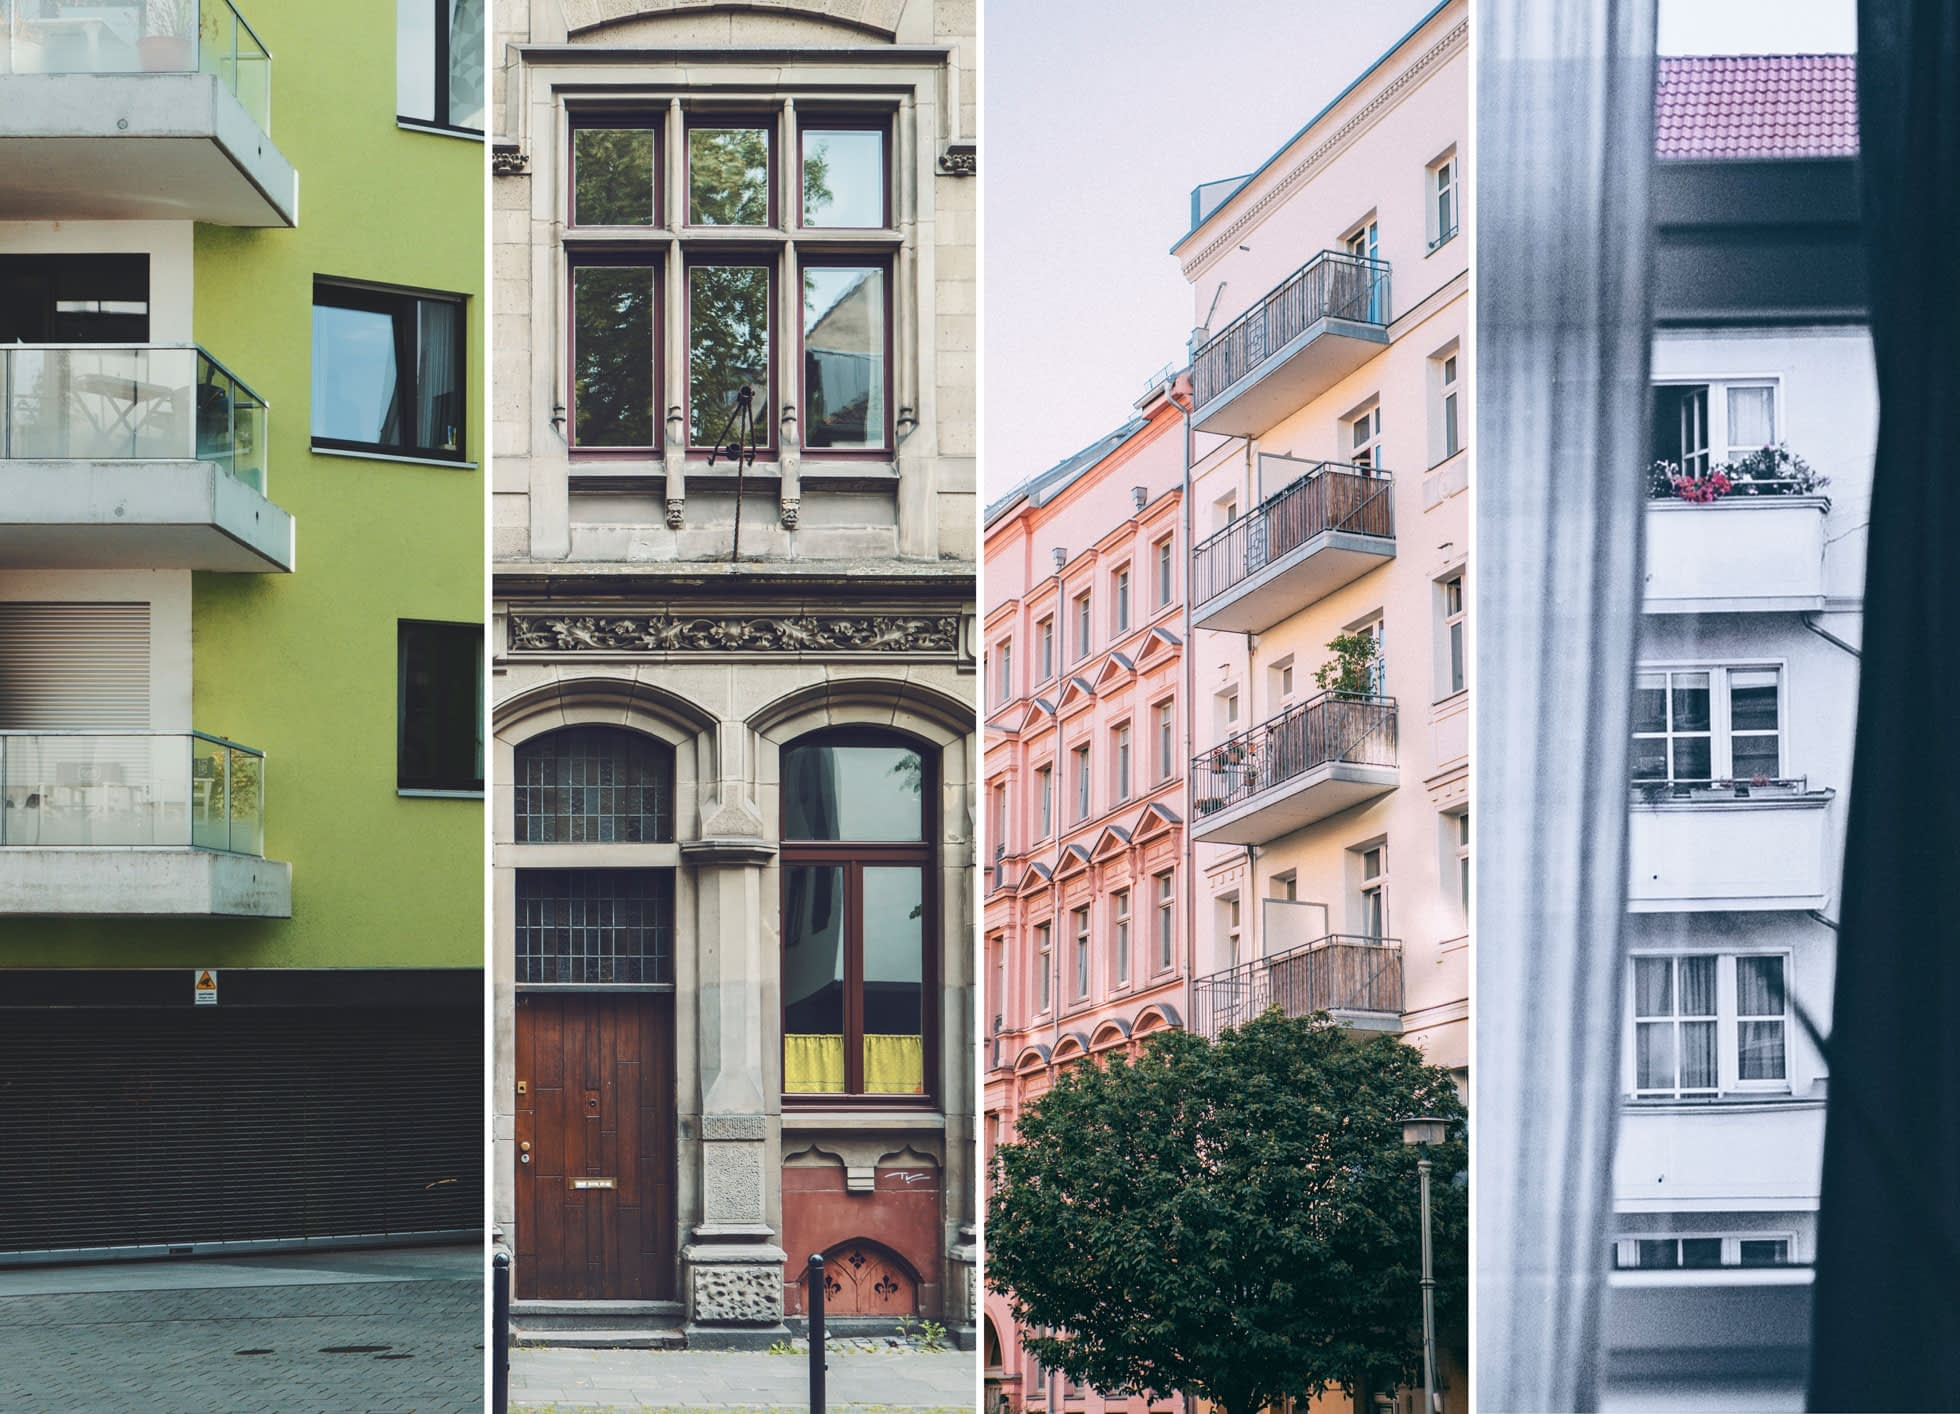 student accommodation in Germany